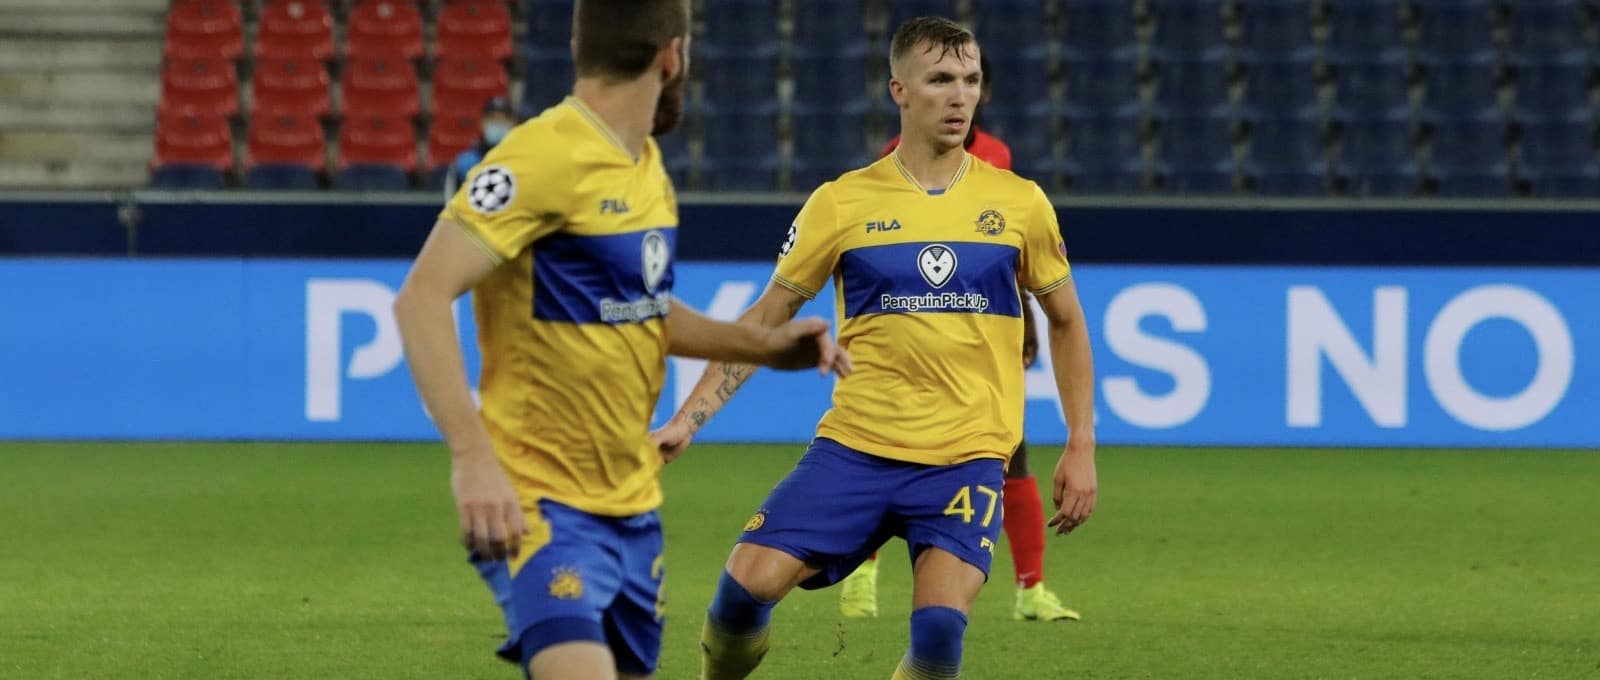 Maccabi falls to Salzburg 3-1 and are eliminated from Champions League Qualification; Europa League Group Stage Draw Friday